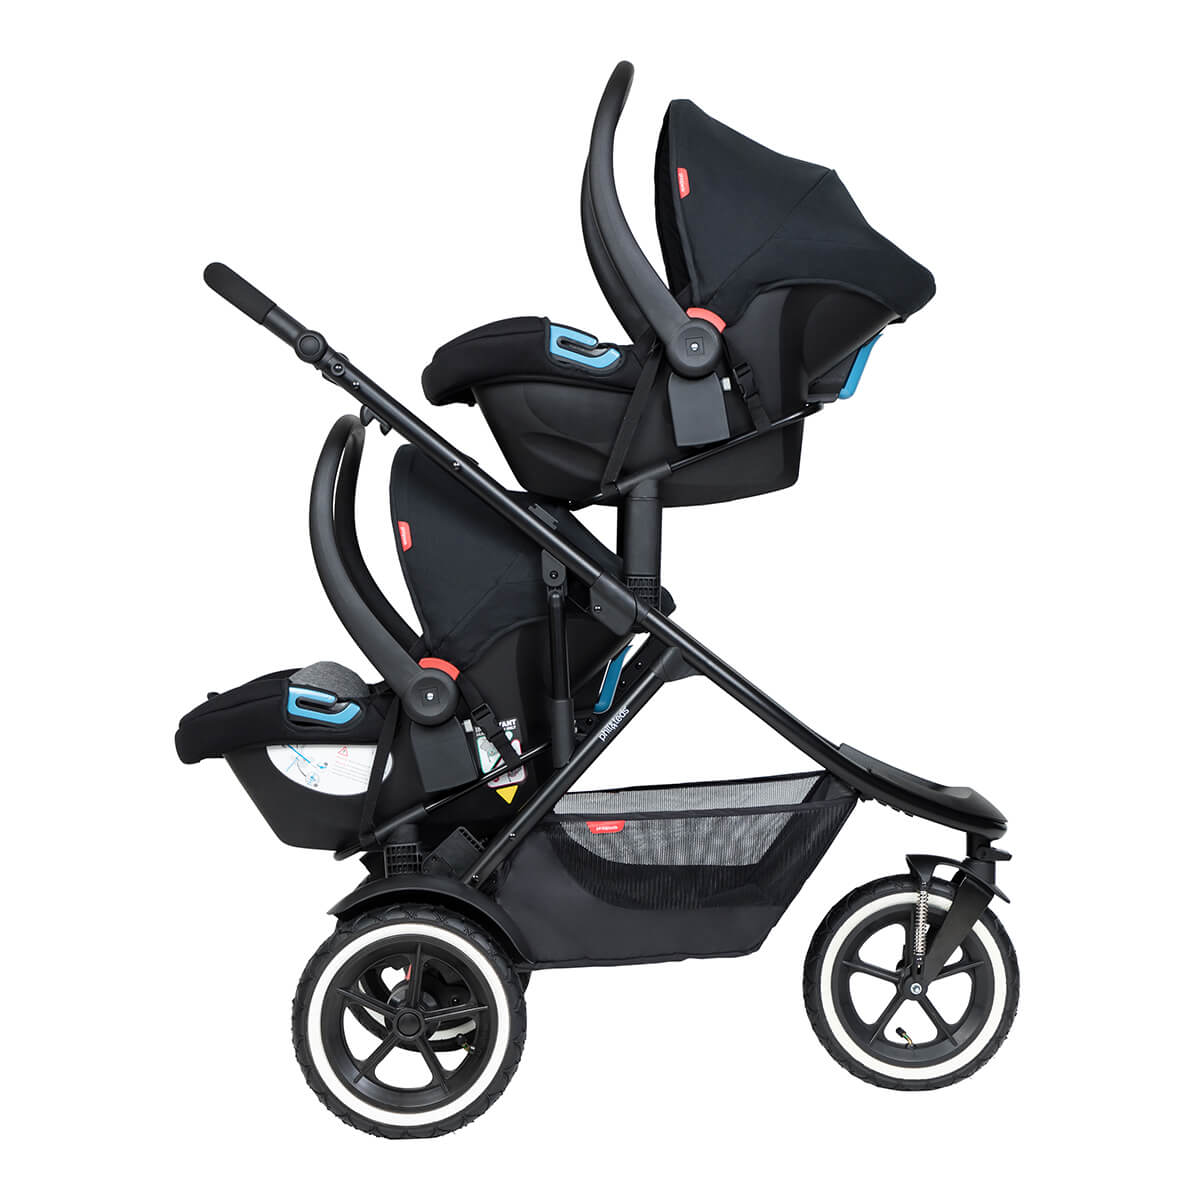 https://cdn.accentuate.io/4546157740137/19119322923113/philteds-sport-buggy-with-double-alpha-travel-system-v1625778274289.jpg?1200x1200